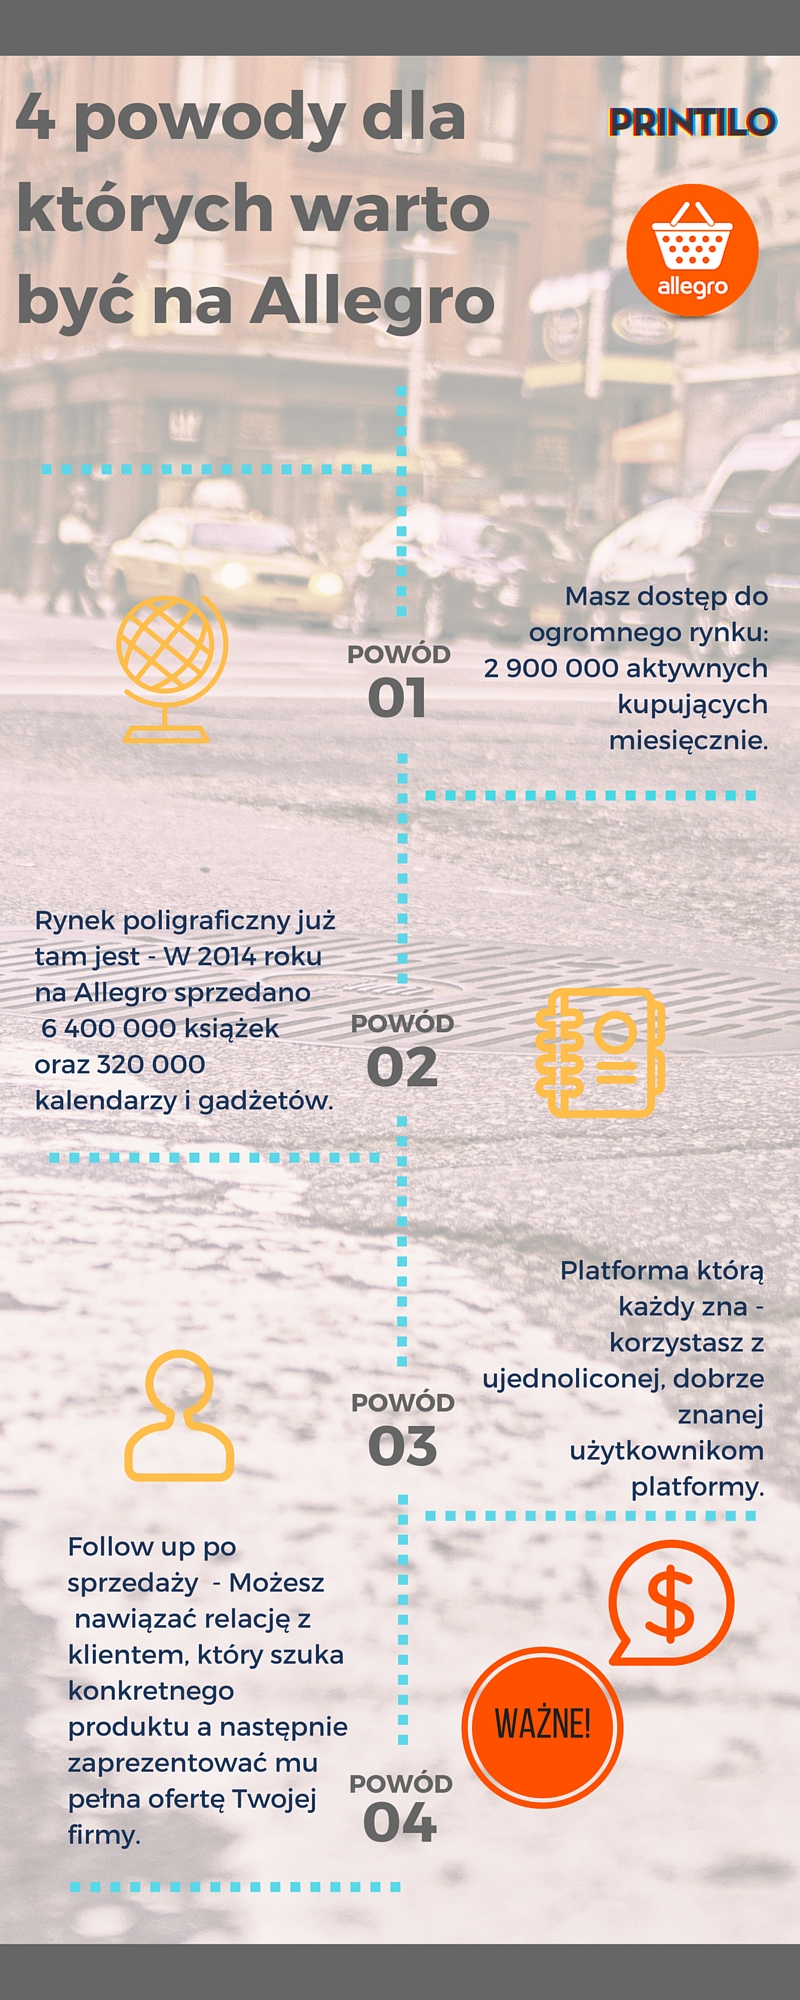 allegro, web-to-print, drukarnia internetowa, marketing dla drukarni, drukarnia internetowa, web-to-print, digital marketing, marketing internetowy, druk internetowy, narzędzia dla drukarni, maszyny drukarskie